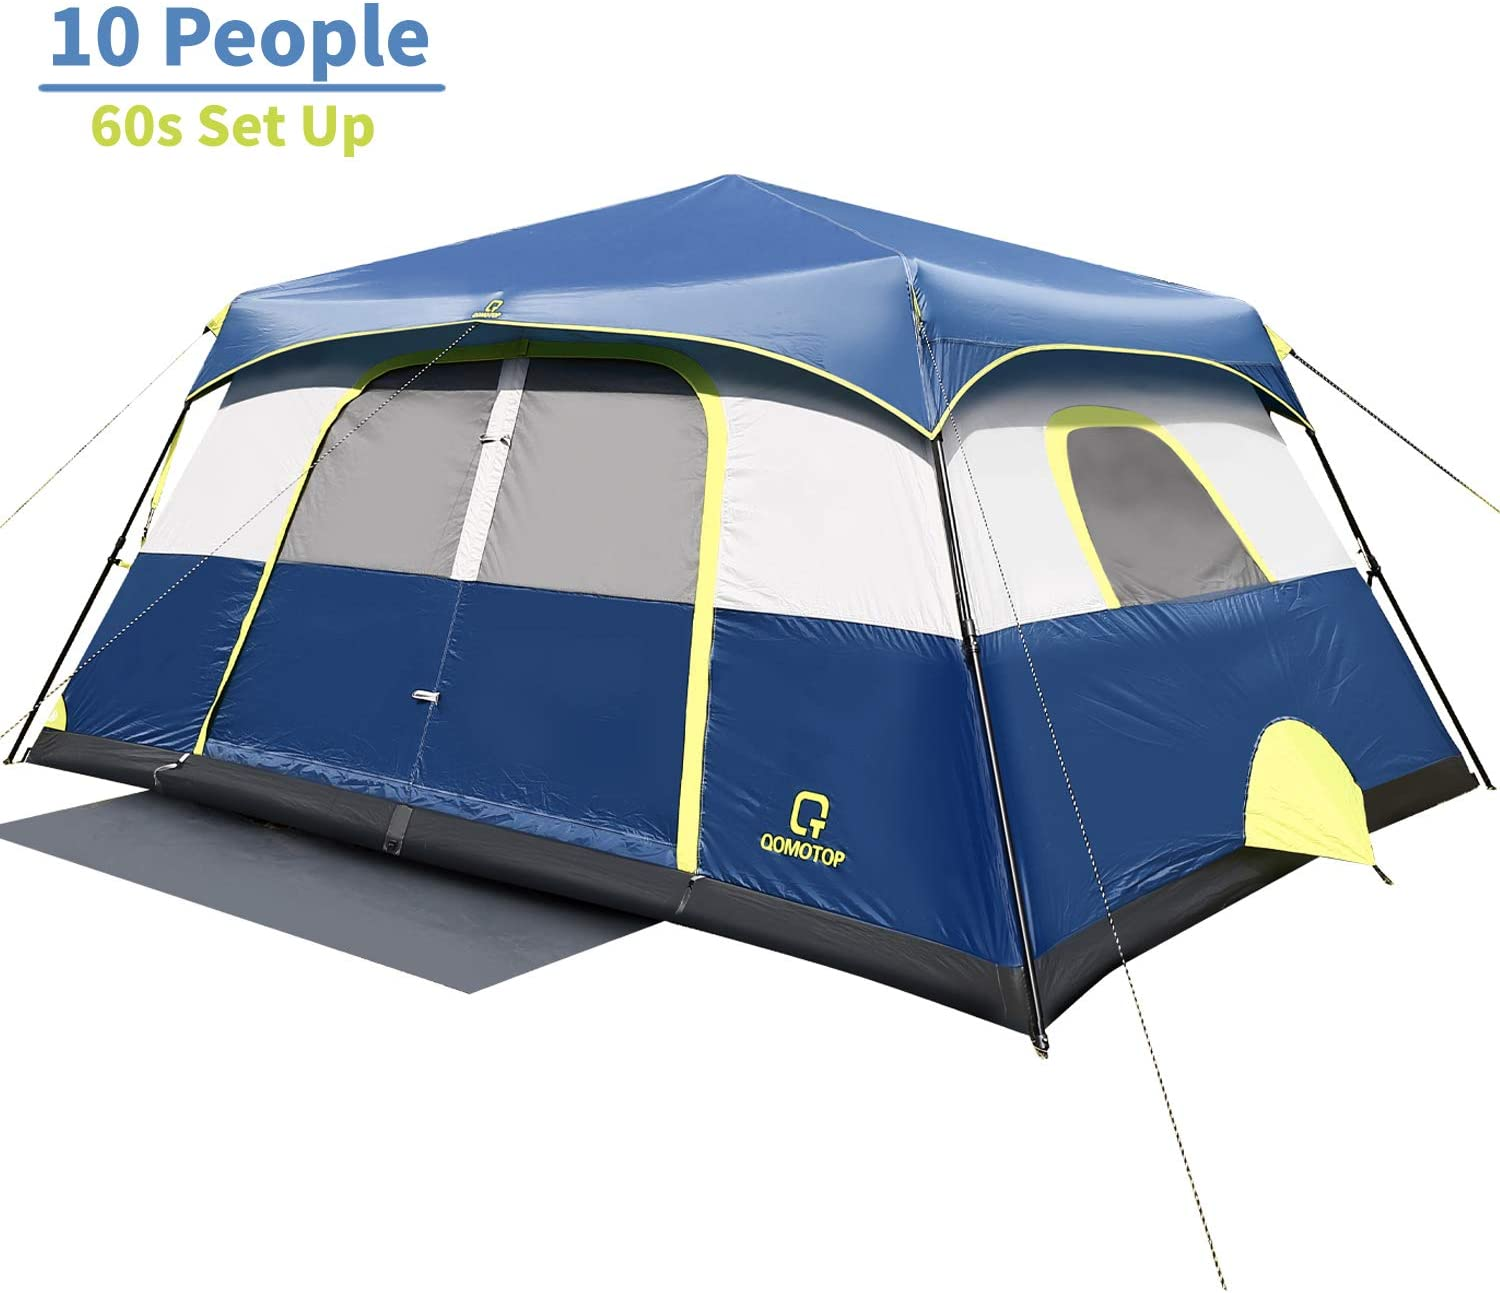 QOMOTOP Camping tent with cord access